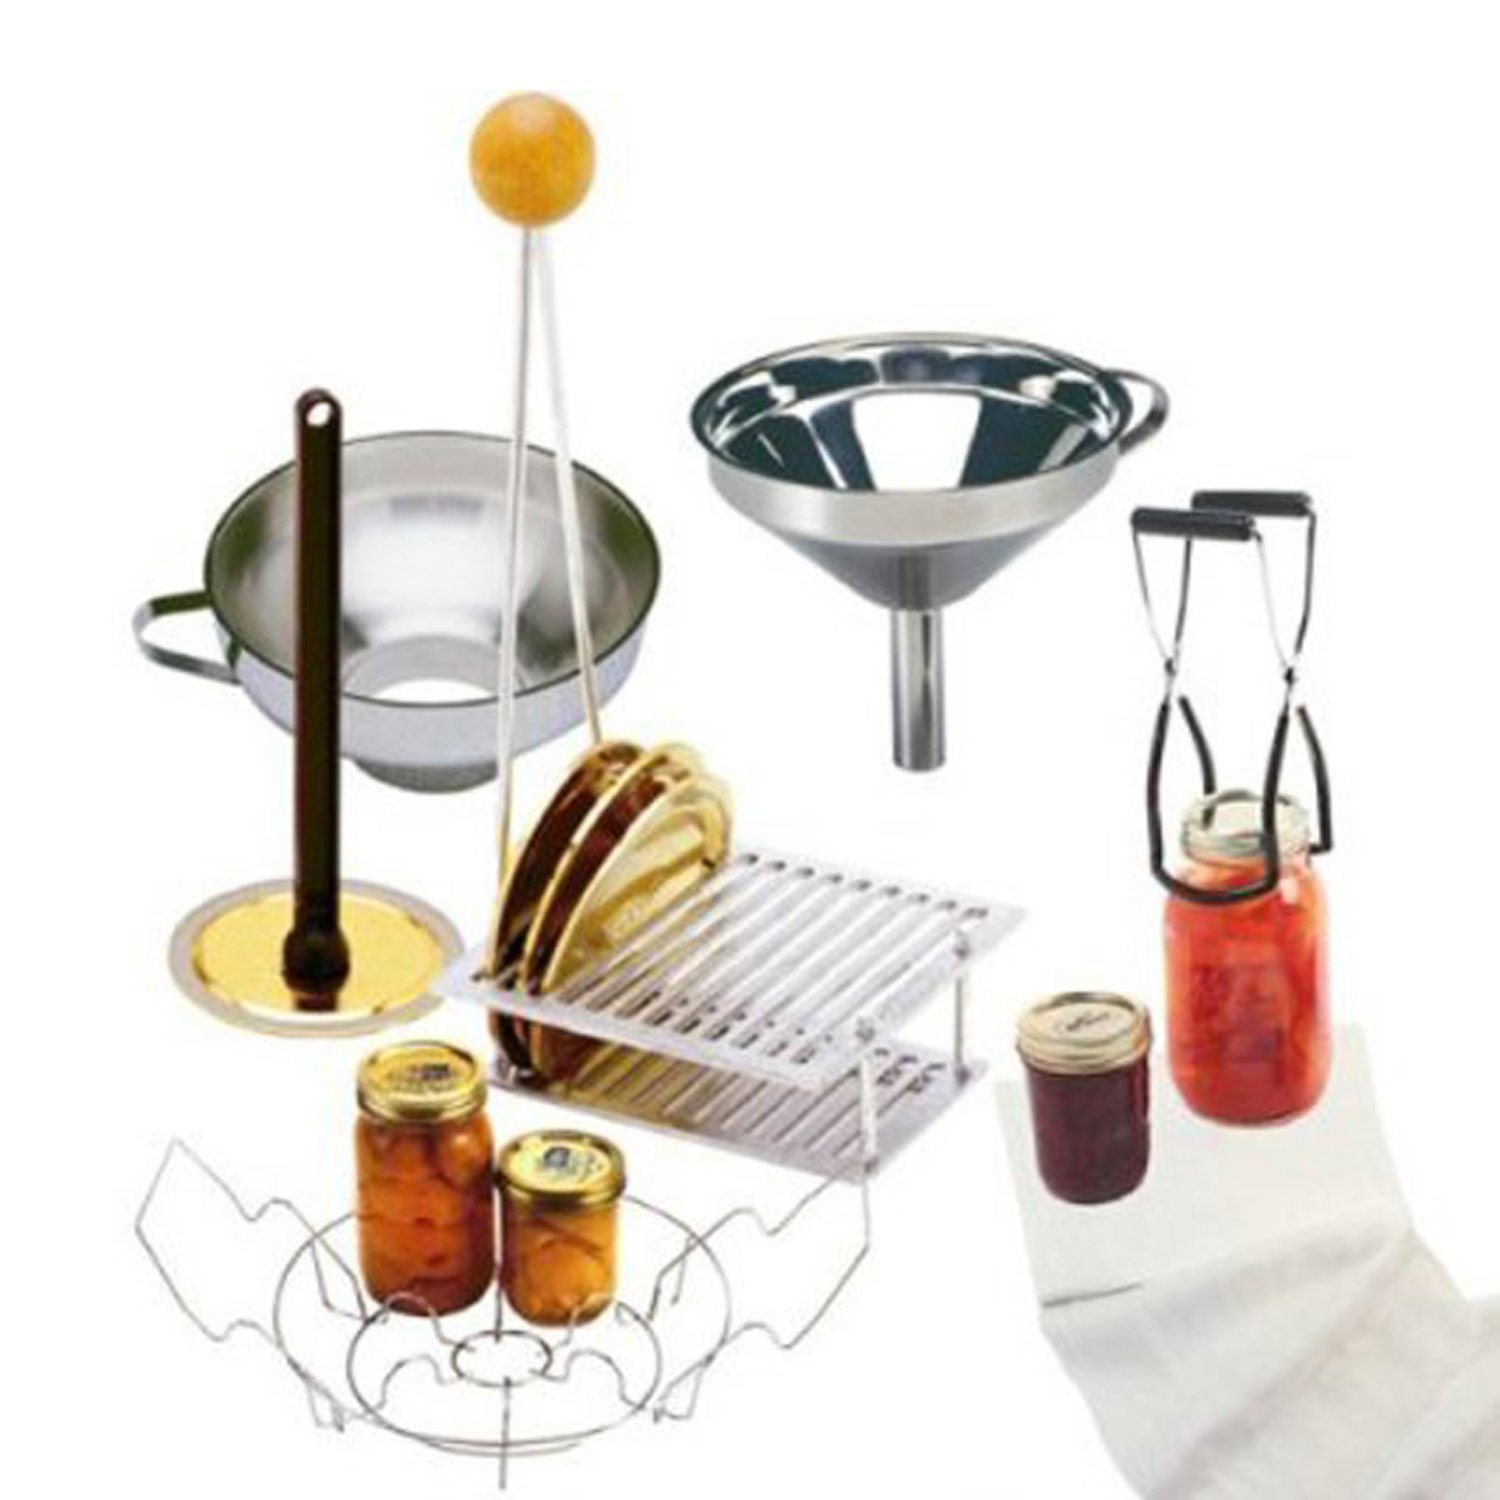 Norpro 2478367600456 7-Piece Home Canning Set by Norpro